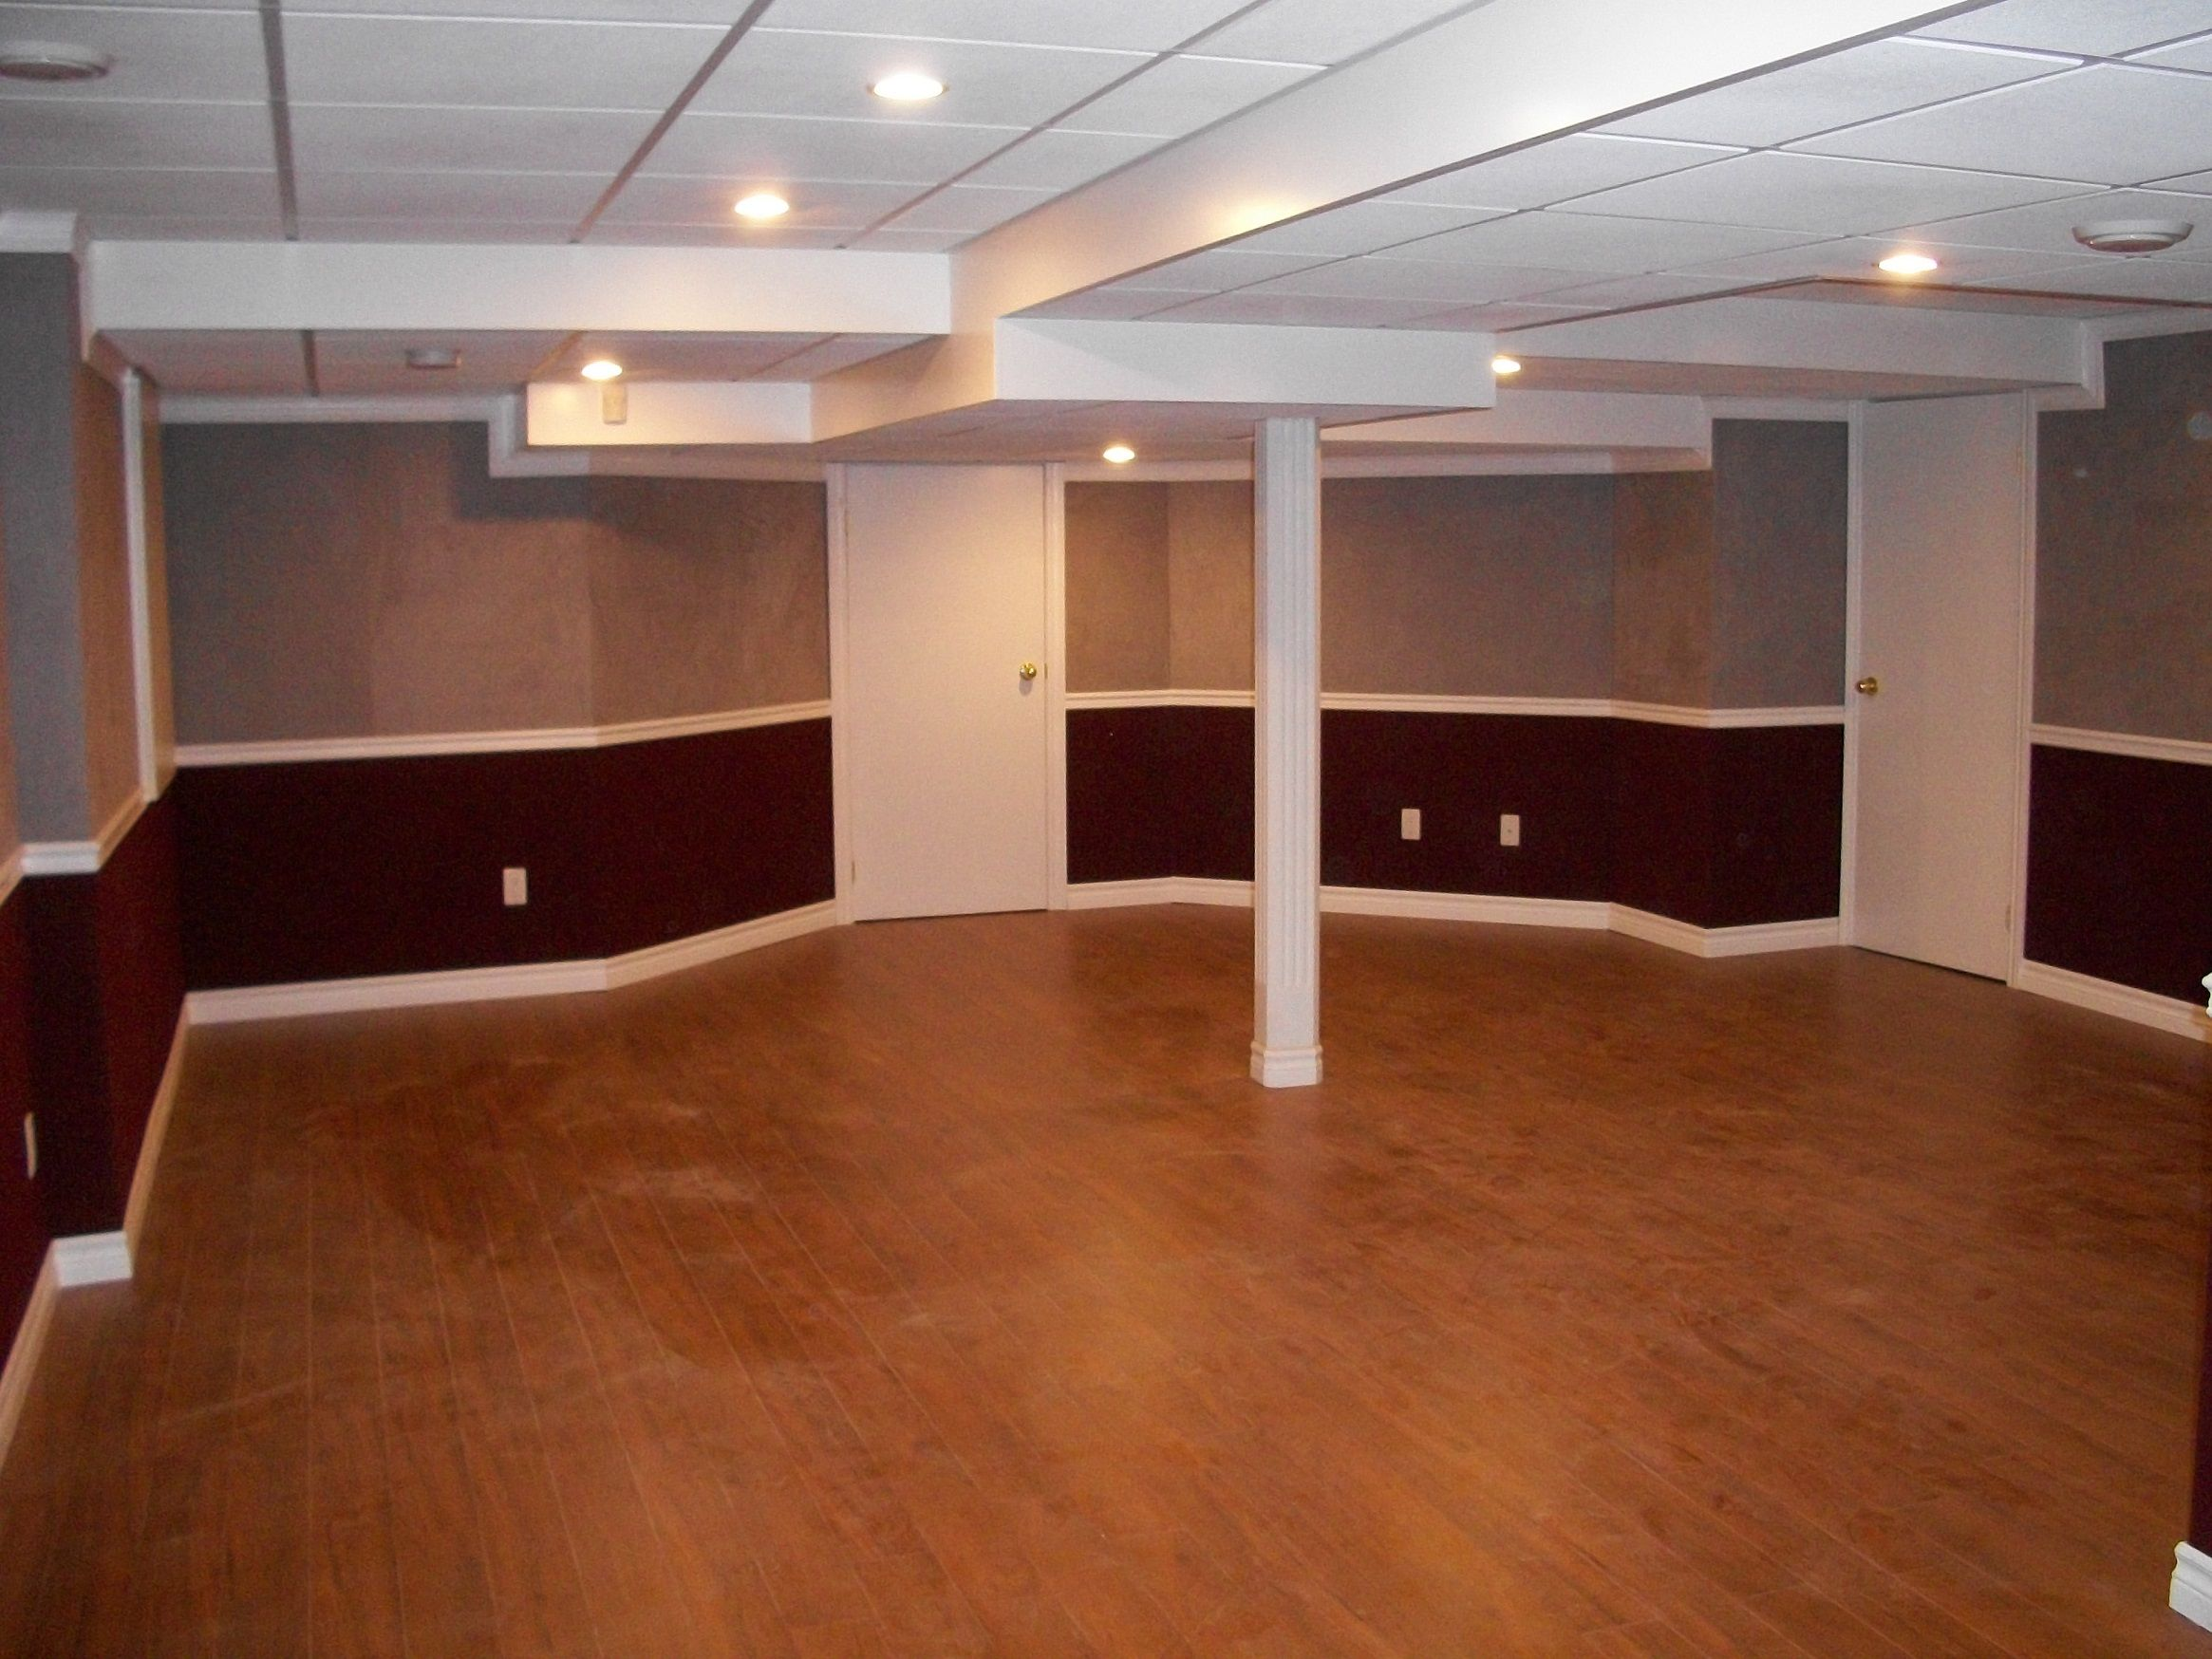 Beautiful Basement: Diy Waterproof Basement Wall Panels And Removable Basement Wall  Panels With Insulated Basement Wall